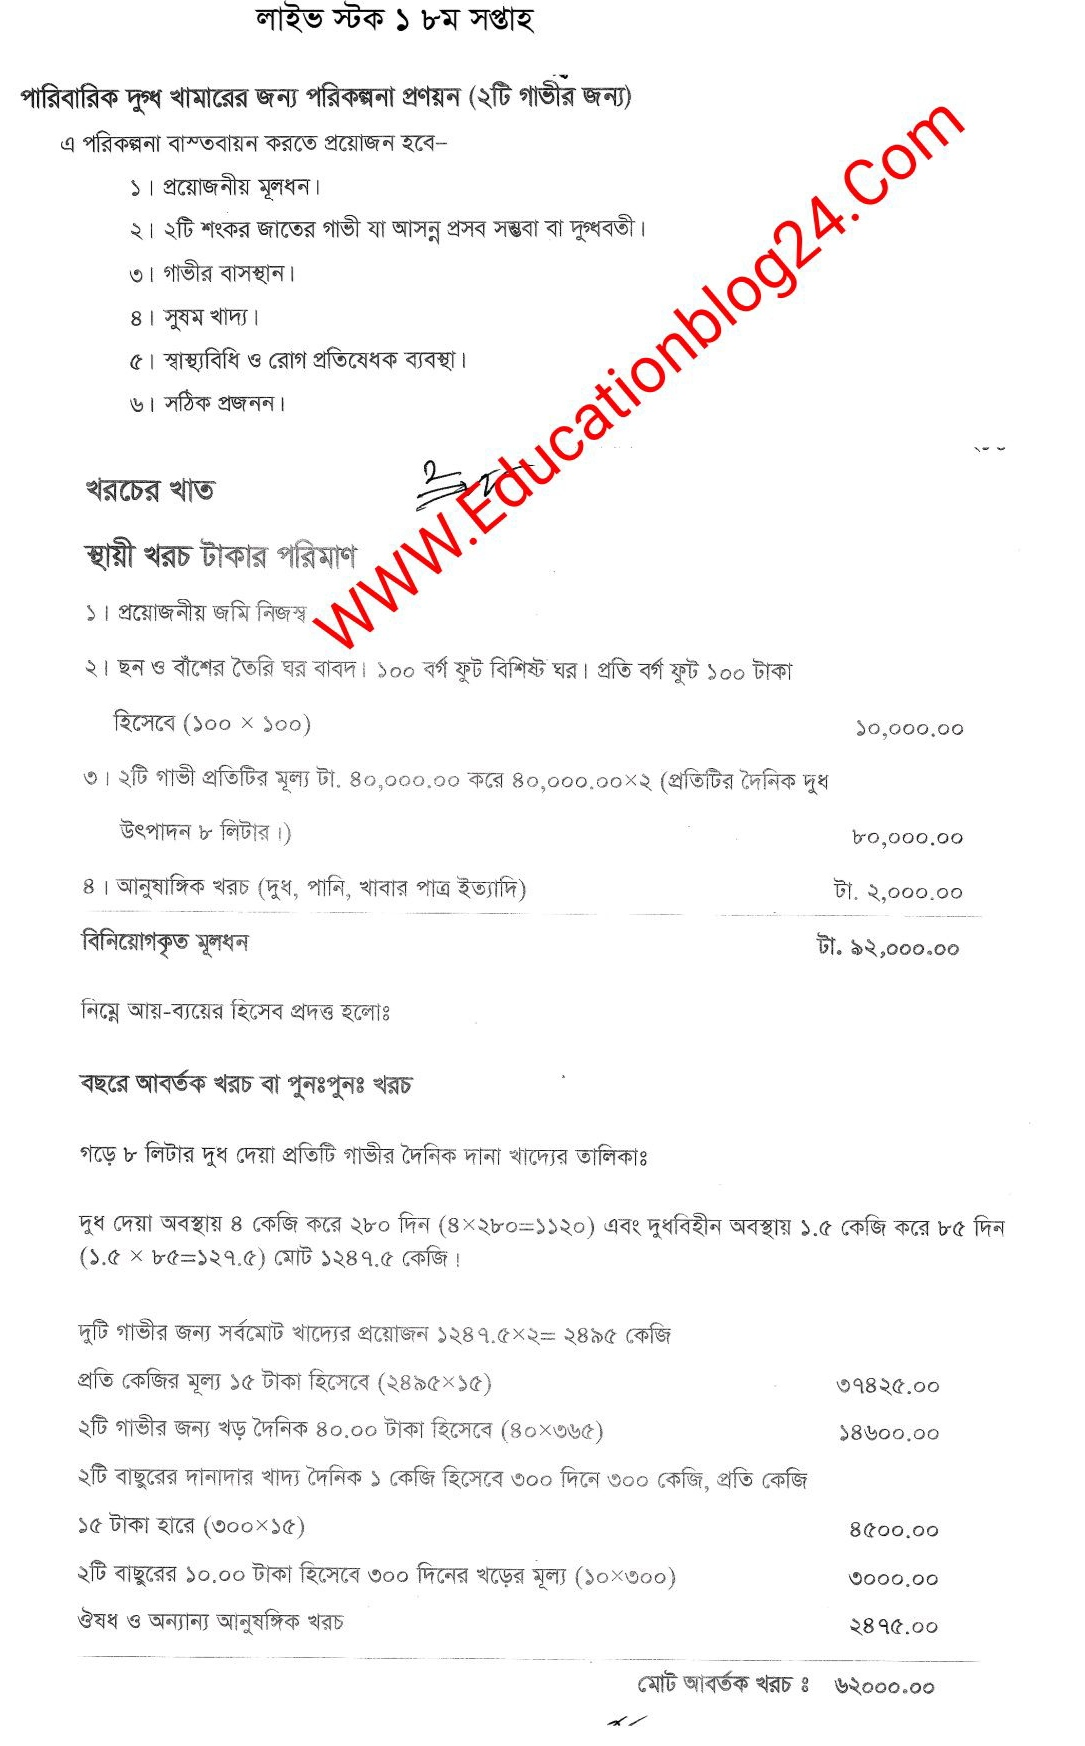 SSC / Dakhil (Vocational) Livestock Rearing and Farming Assignment Answer 2021 5